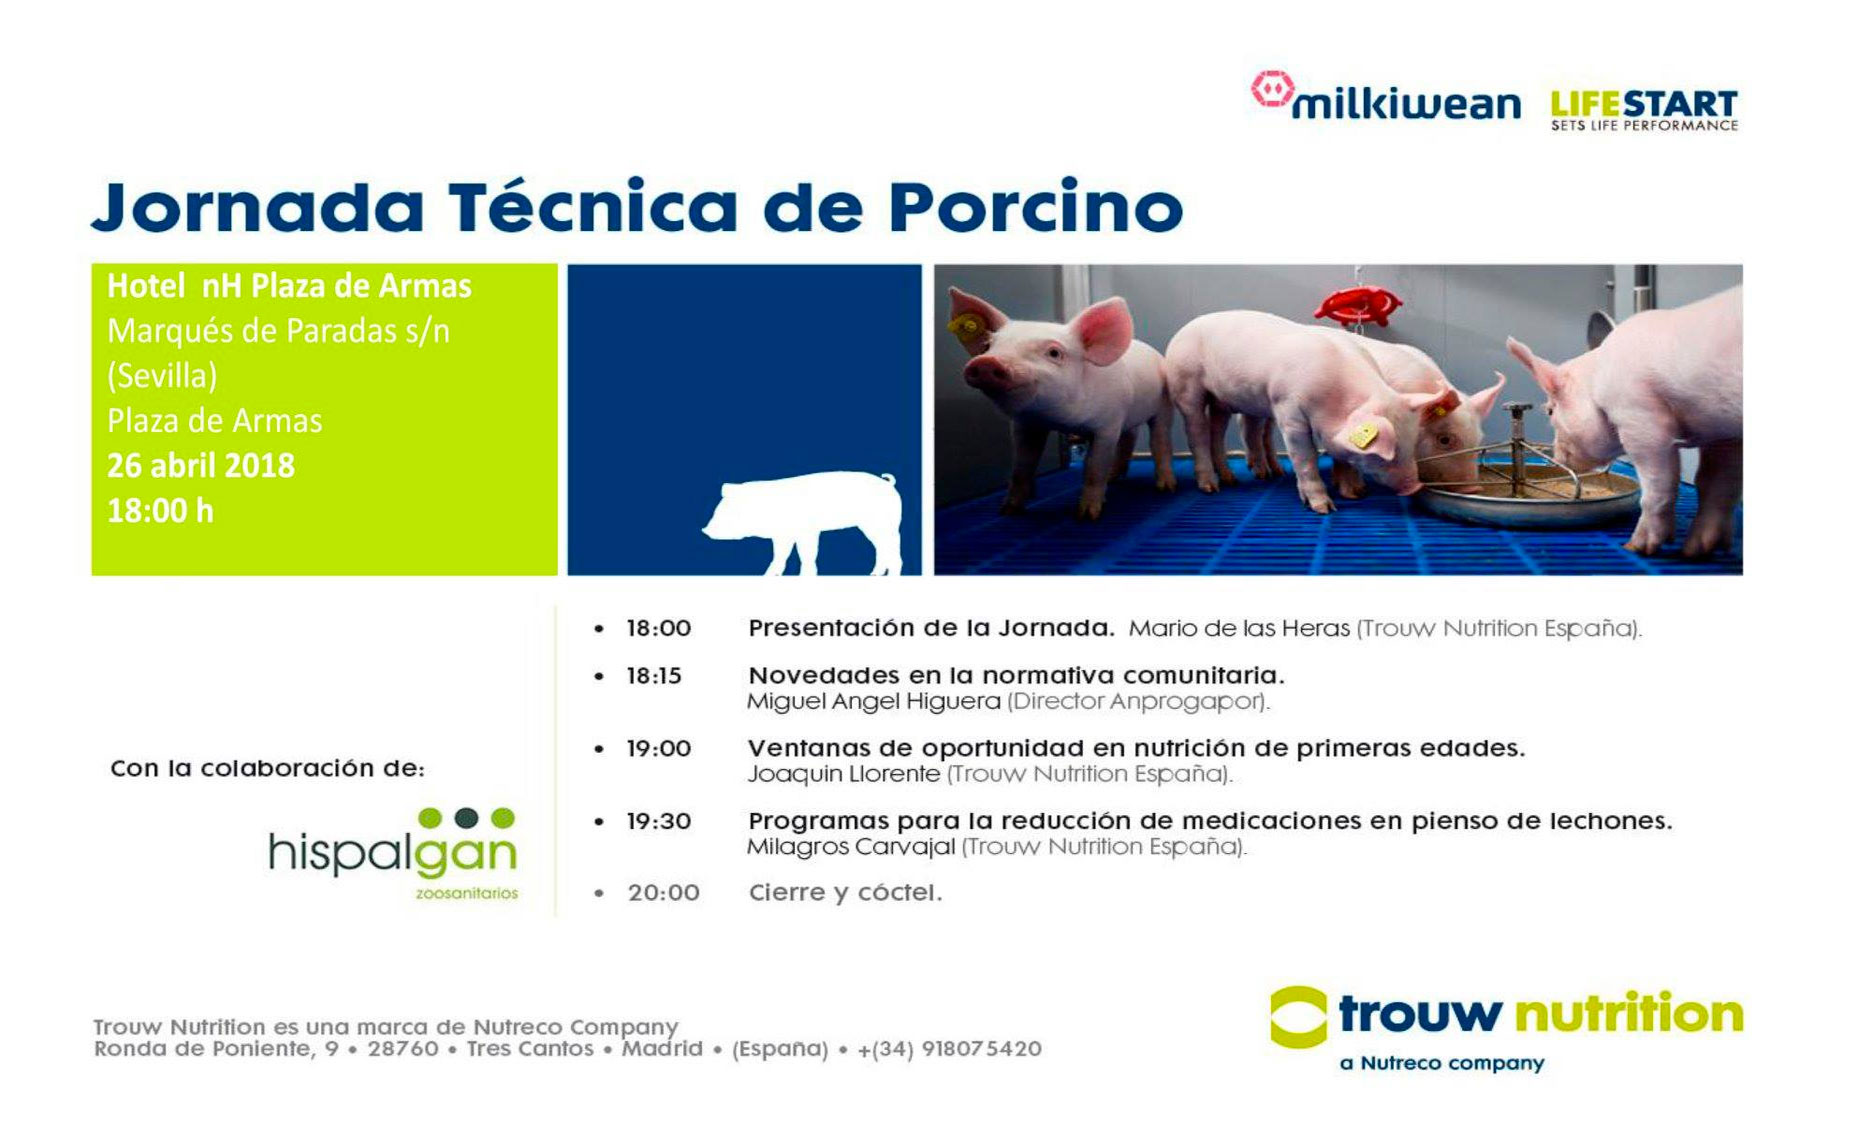 jornada-trouw-nutrition-hispalgan